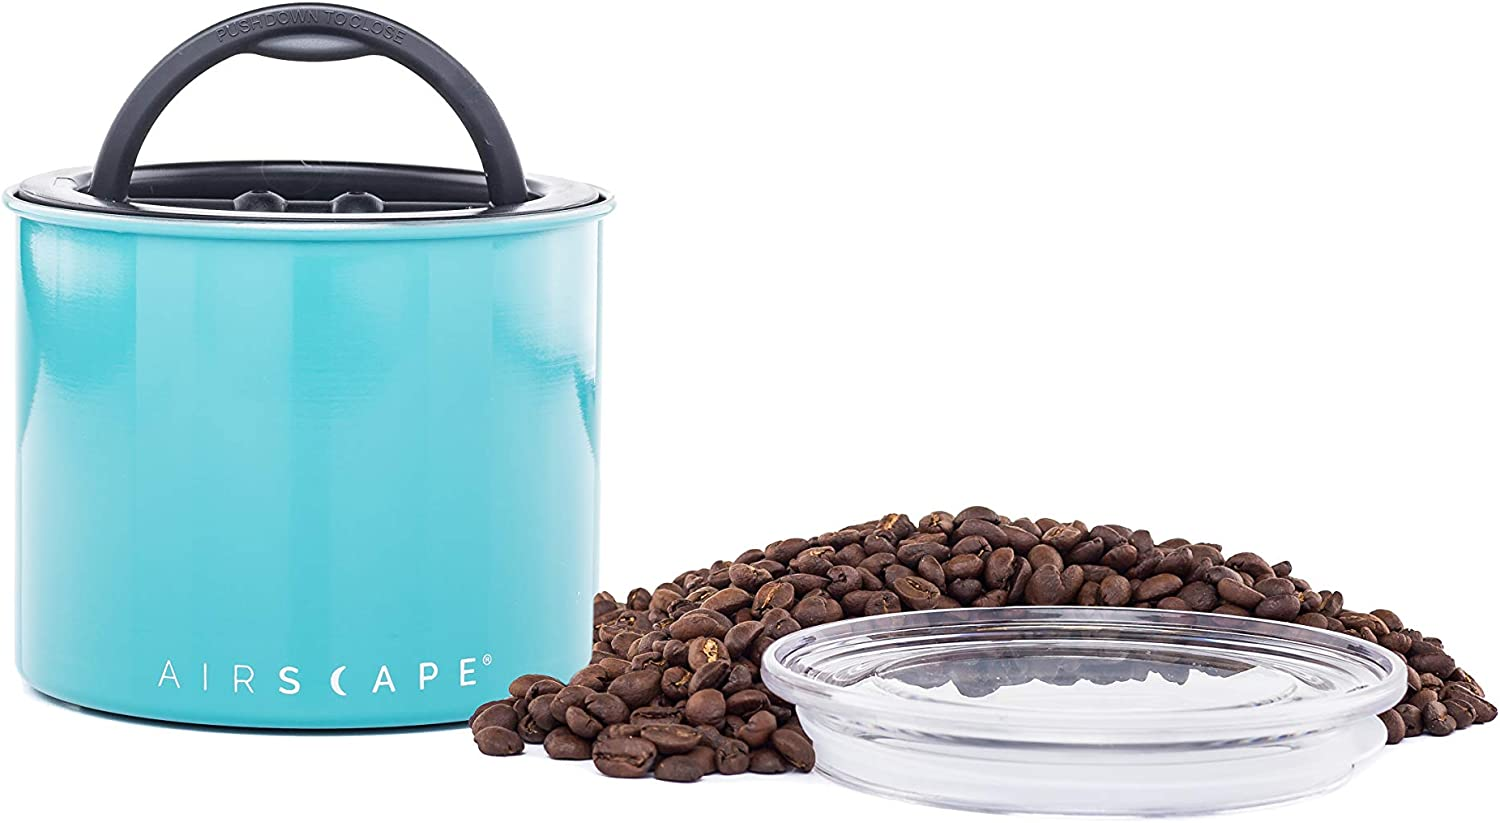 Airscape Coffee and Food Storage Canister - Patented Airtight Lid Preserve Food Freshness Stainless Steel Food Container, Turquoise, Small 4-Inch Can